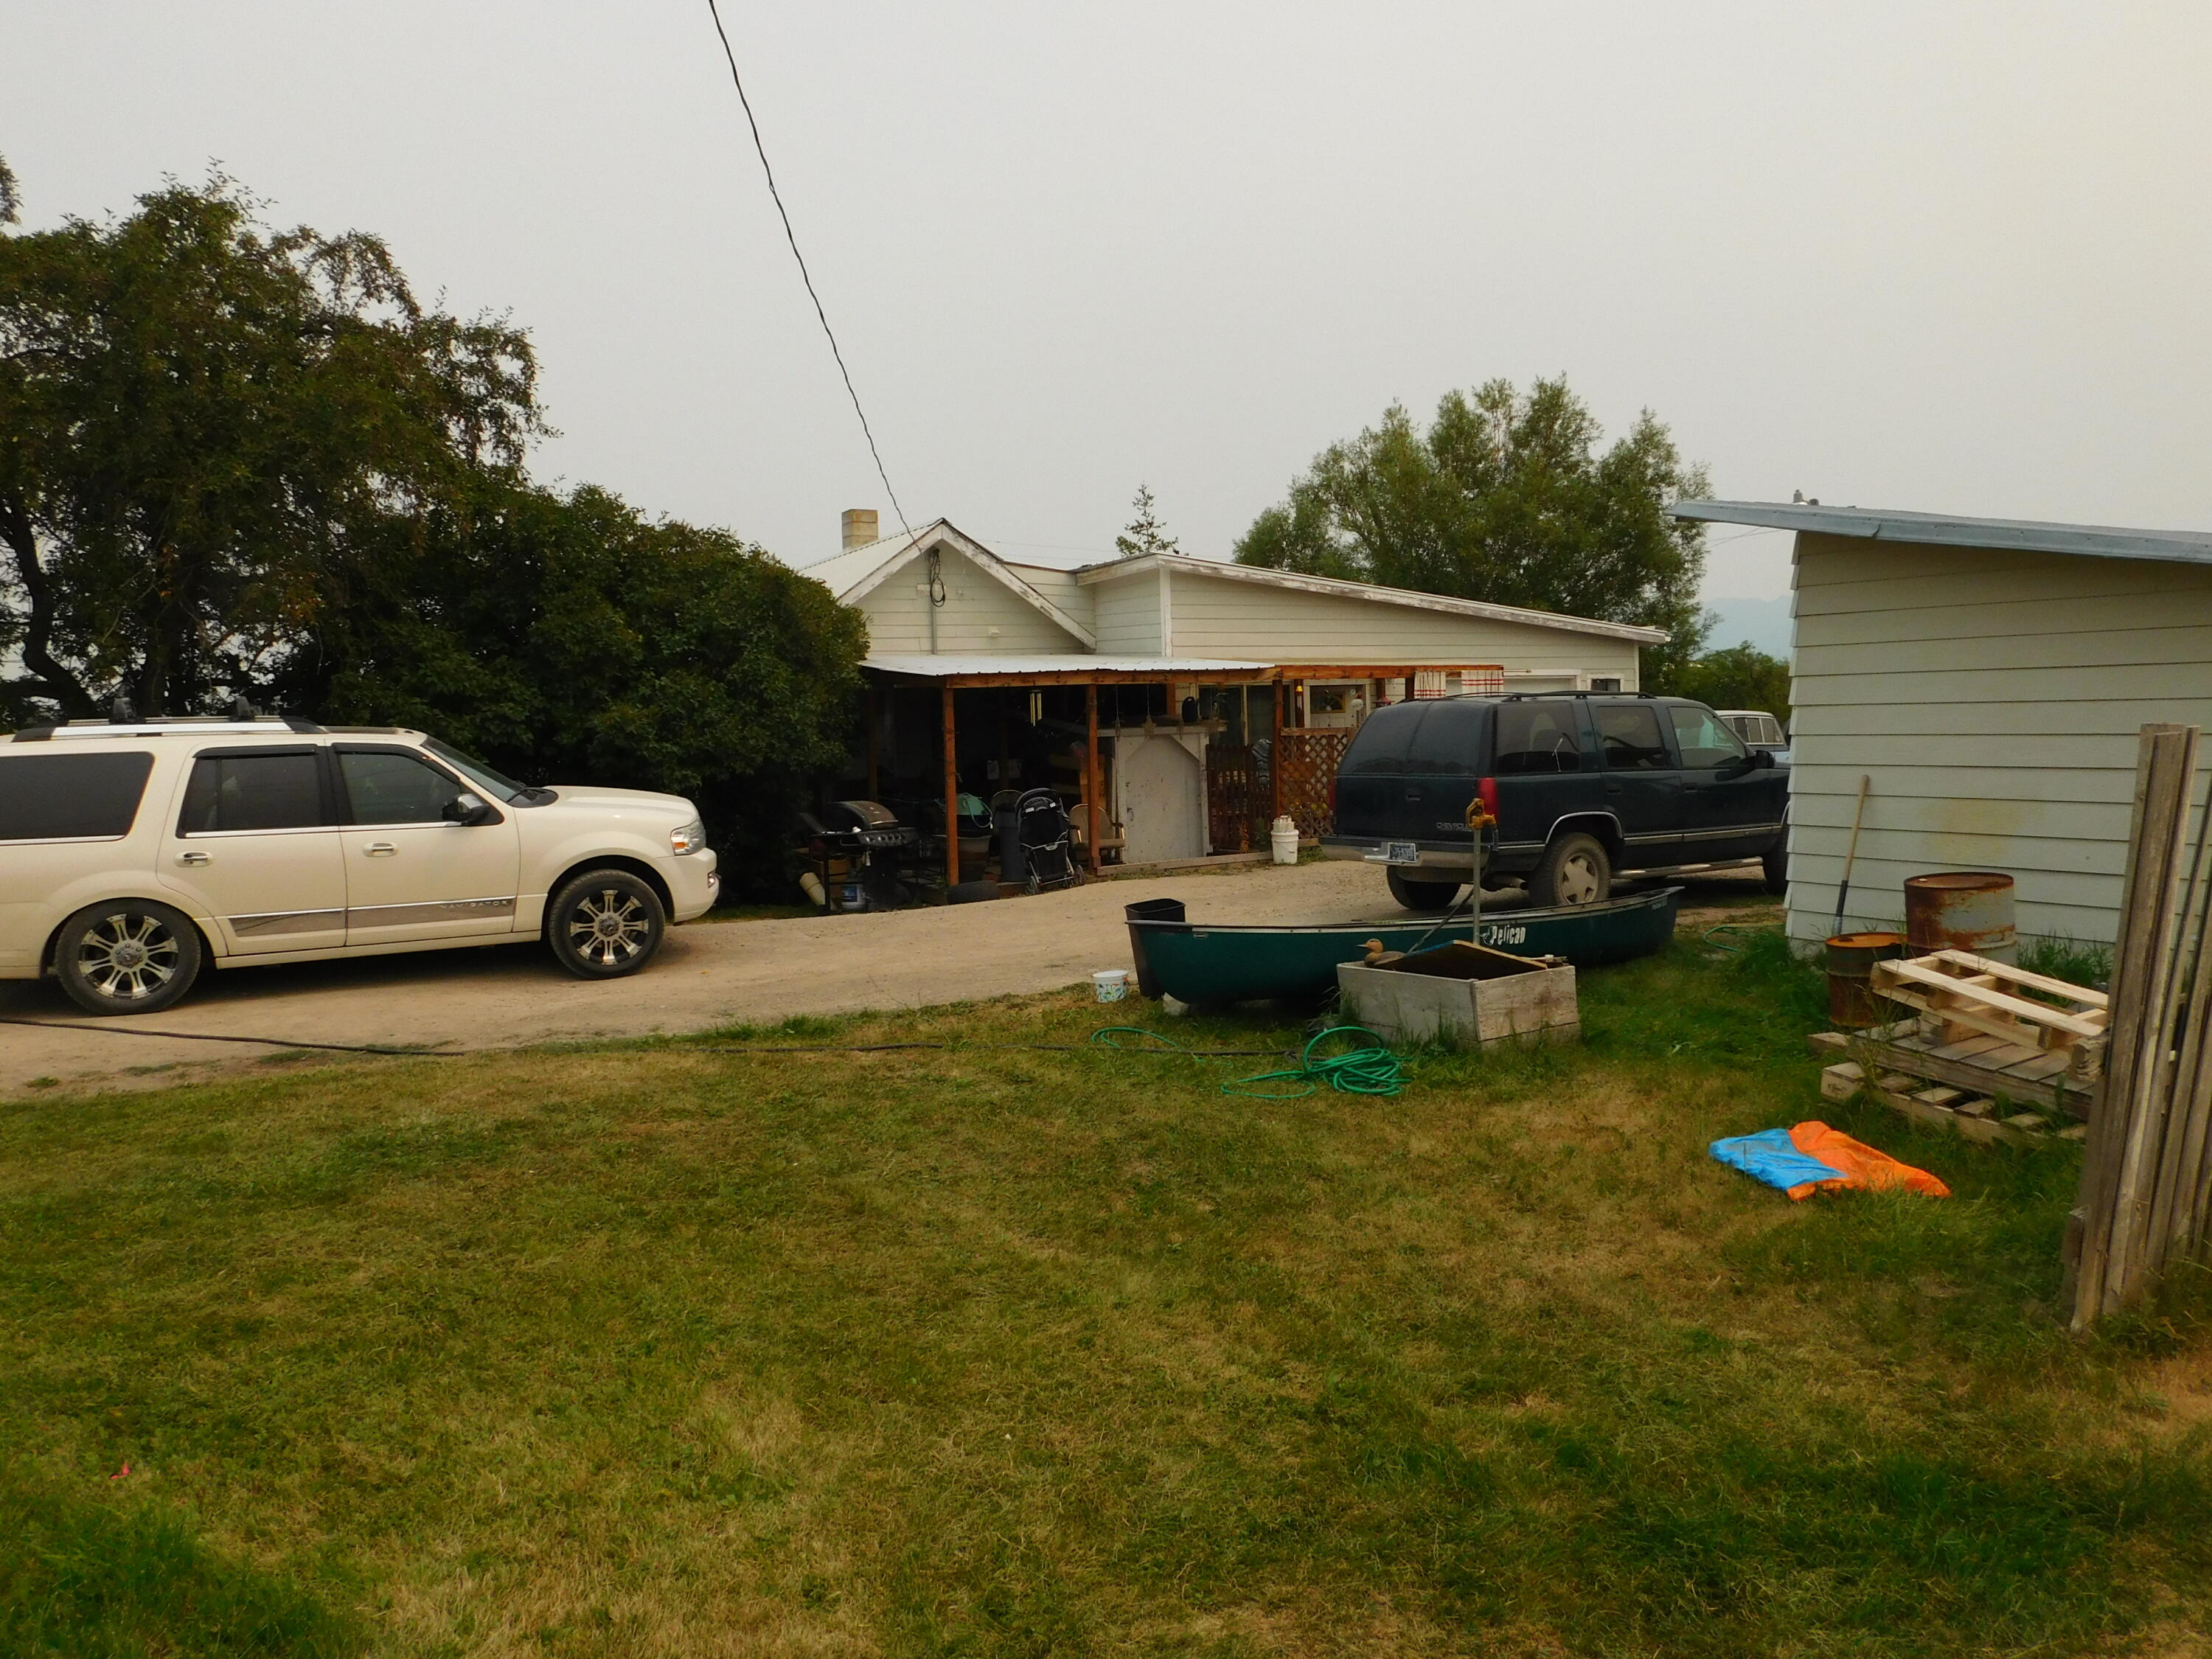 Good for first time owner or as income property.  Tenants in place on a month-to-month basis. Corner lot with good mountain views.  City water & sewer.  Mobile and land on rear of the lot is for sale also.